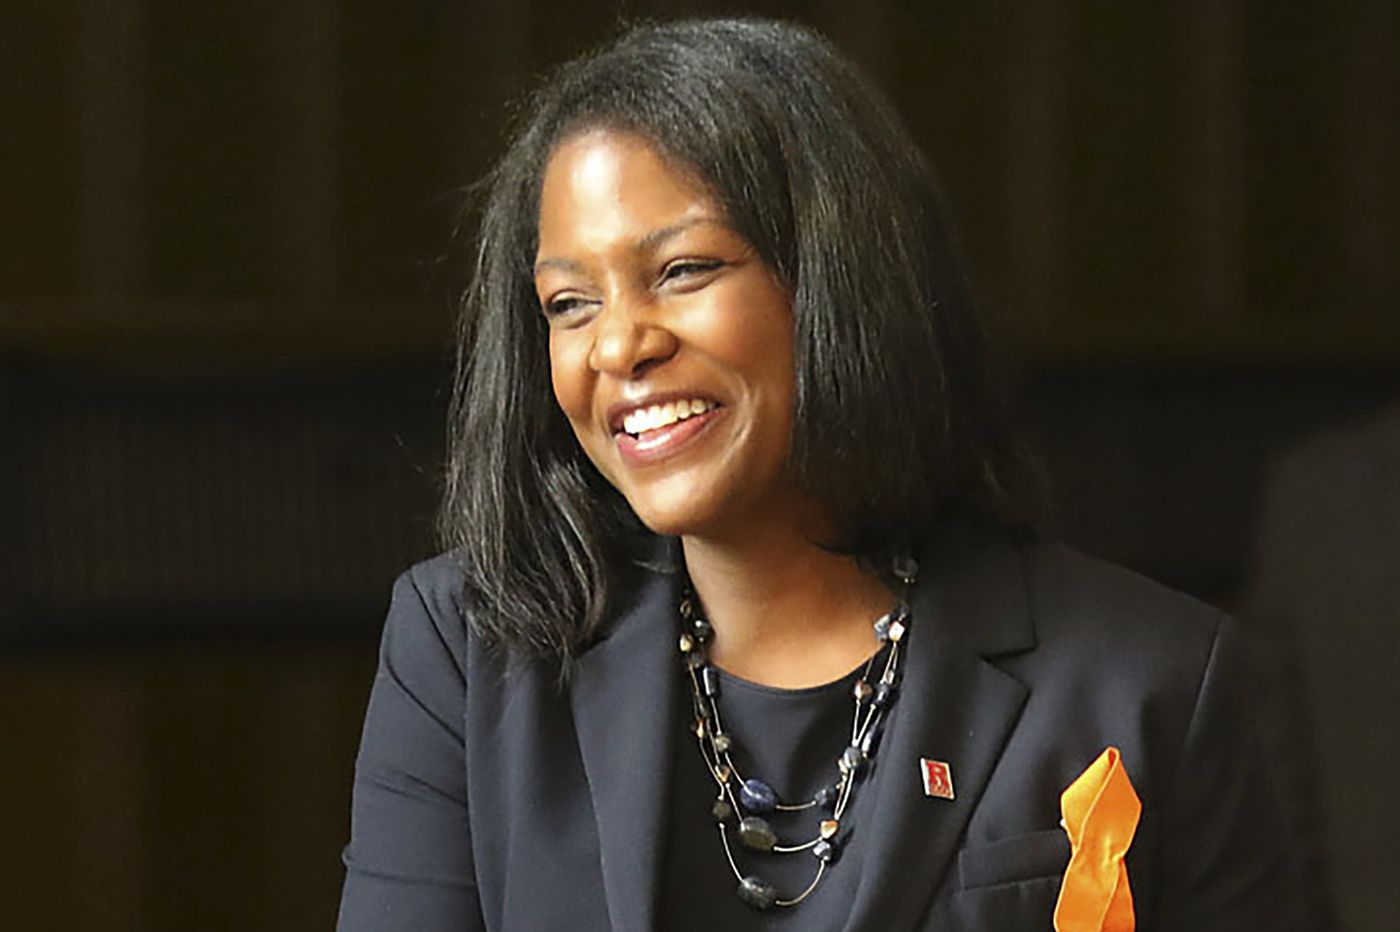 New Jersey's Supreme Court nominee credits her success to humble roots as a first-generation Haitian American